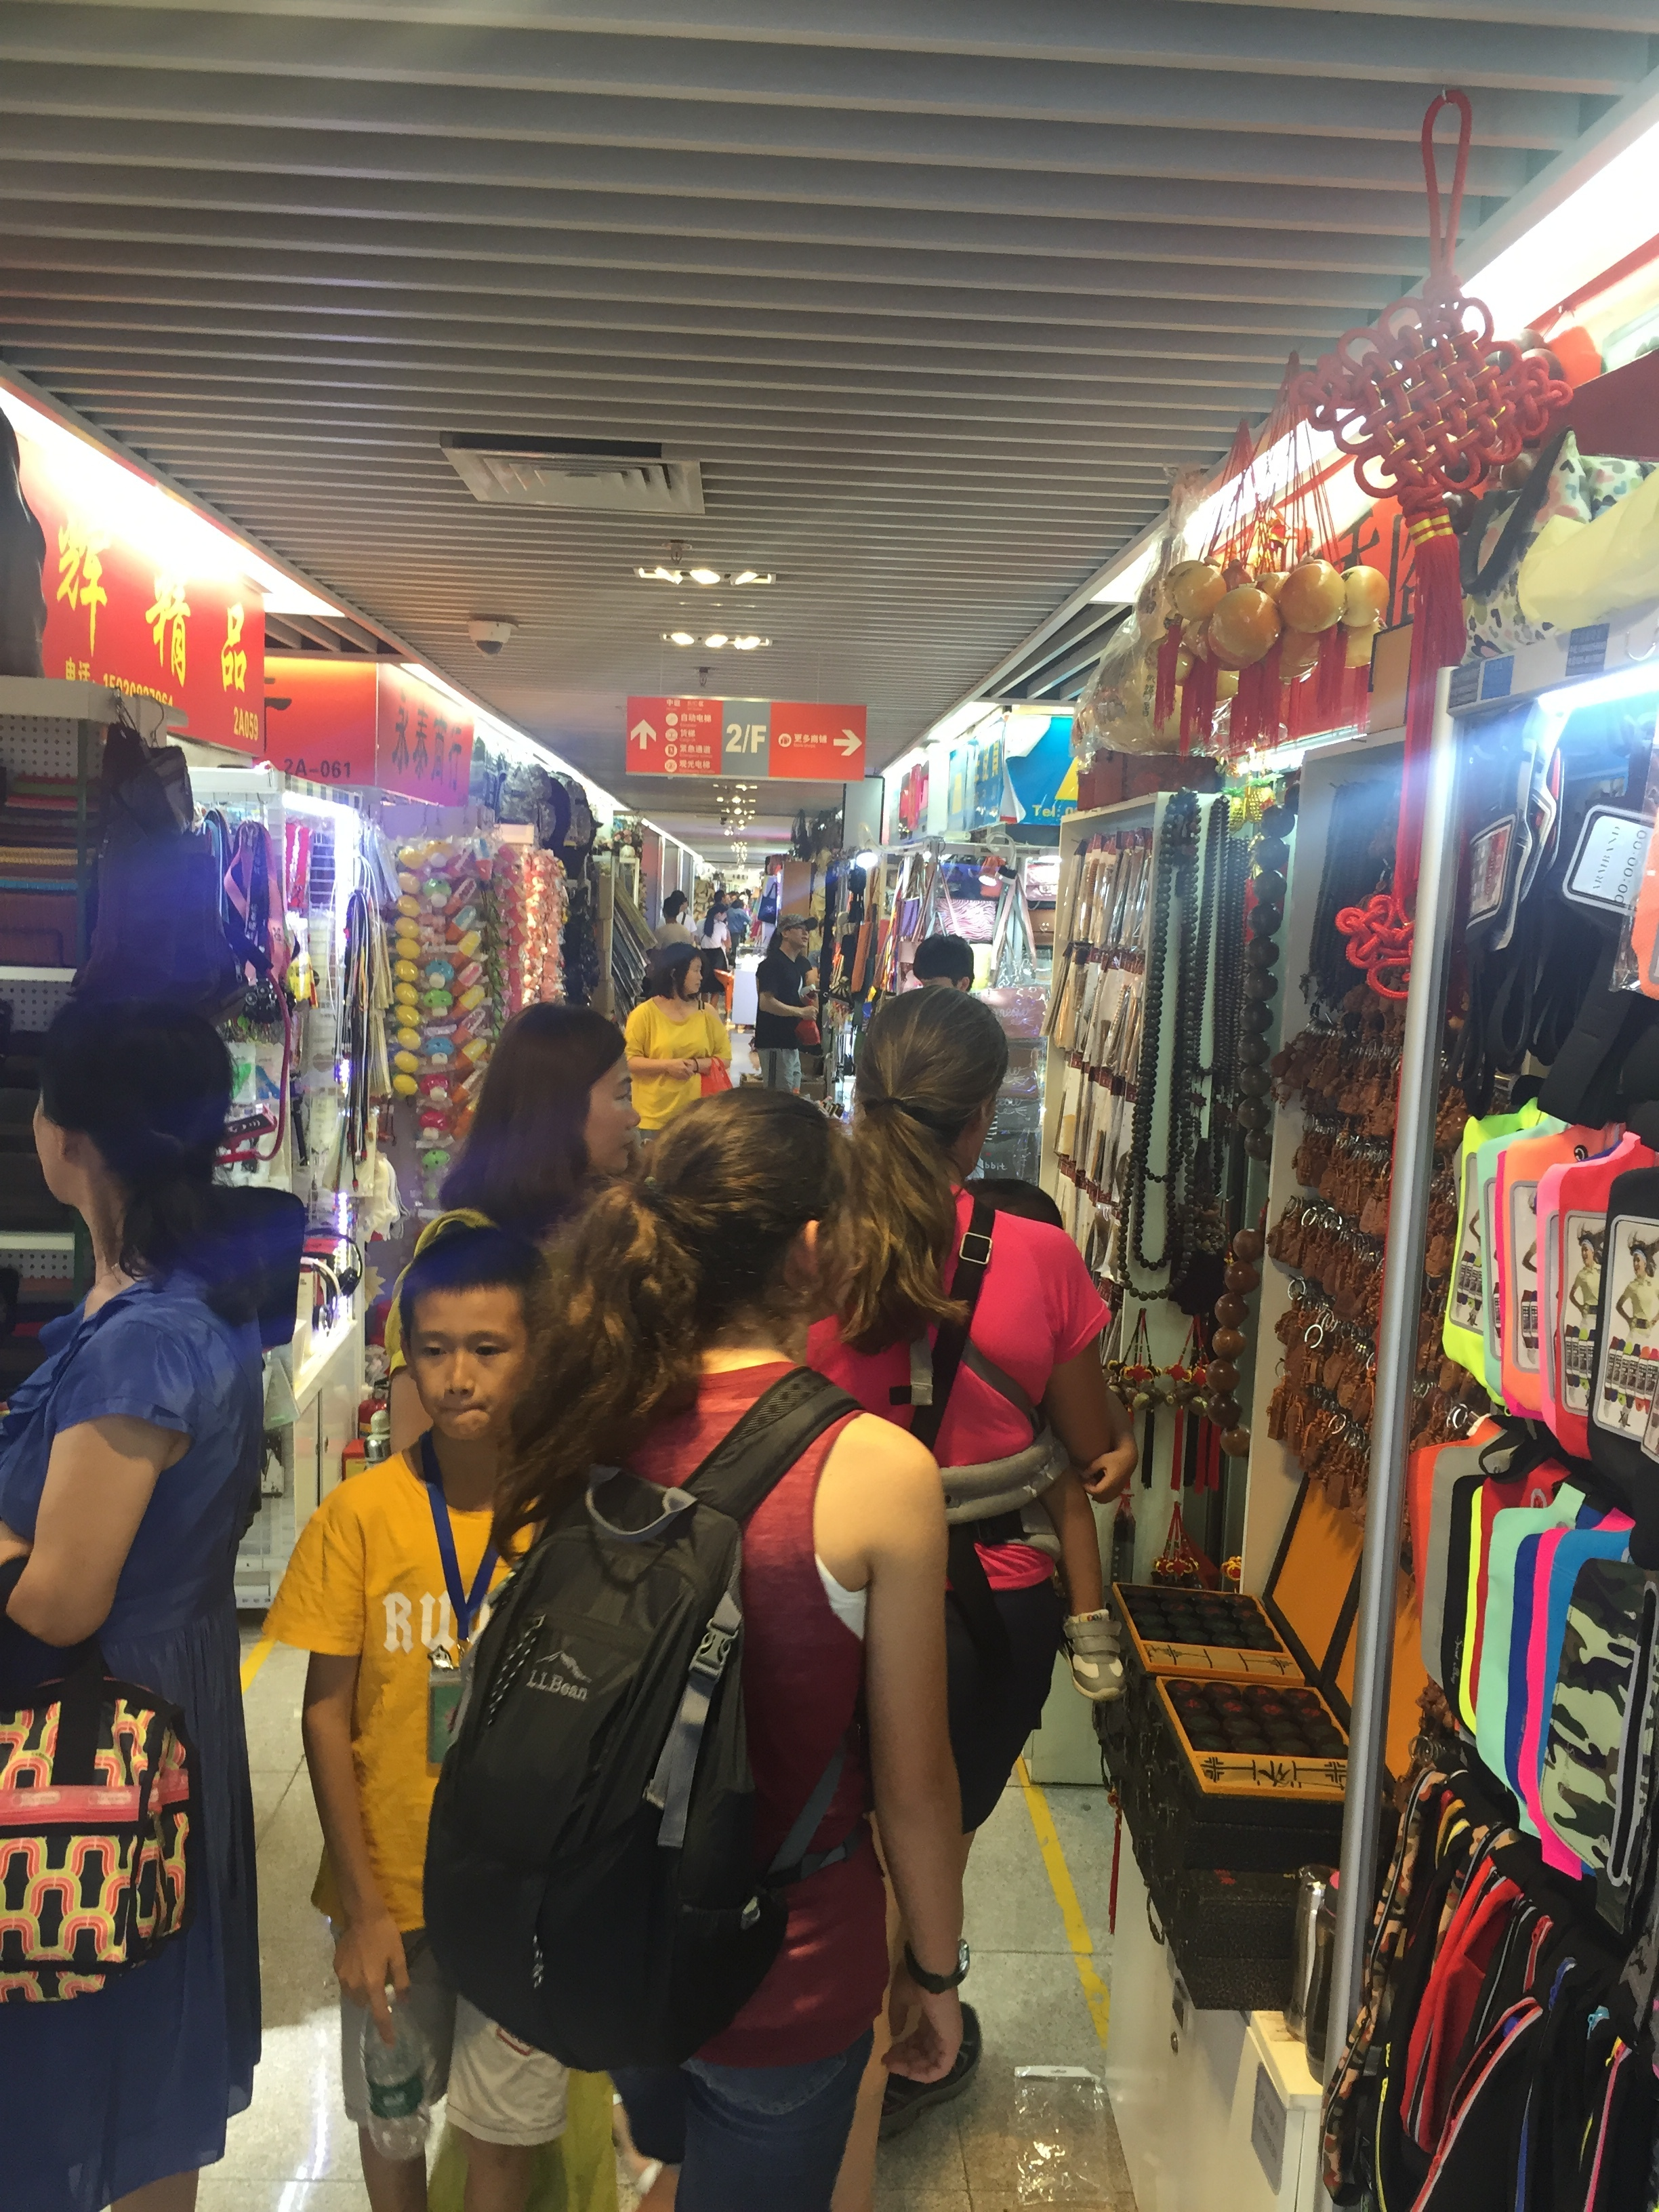 This is the toy and gift wholesale market.... 6 stories of this! Really cheap prices.